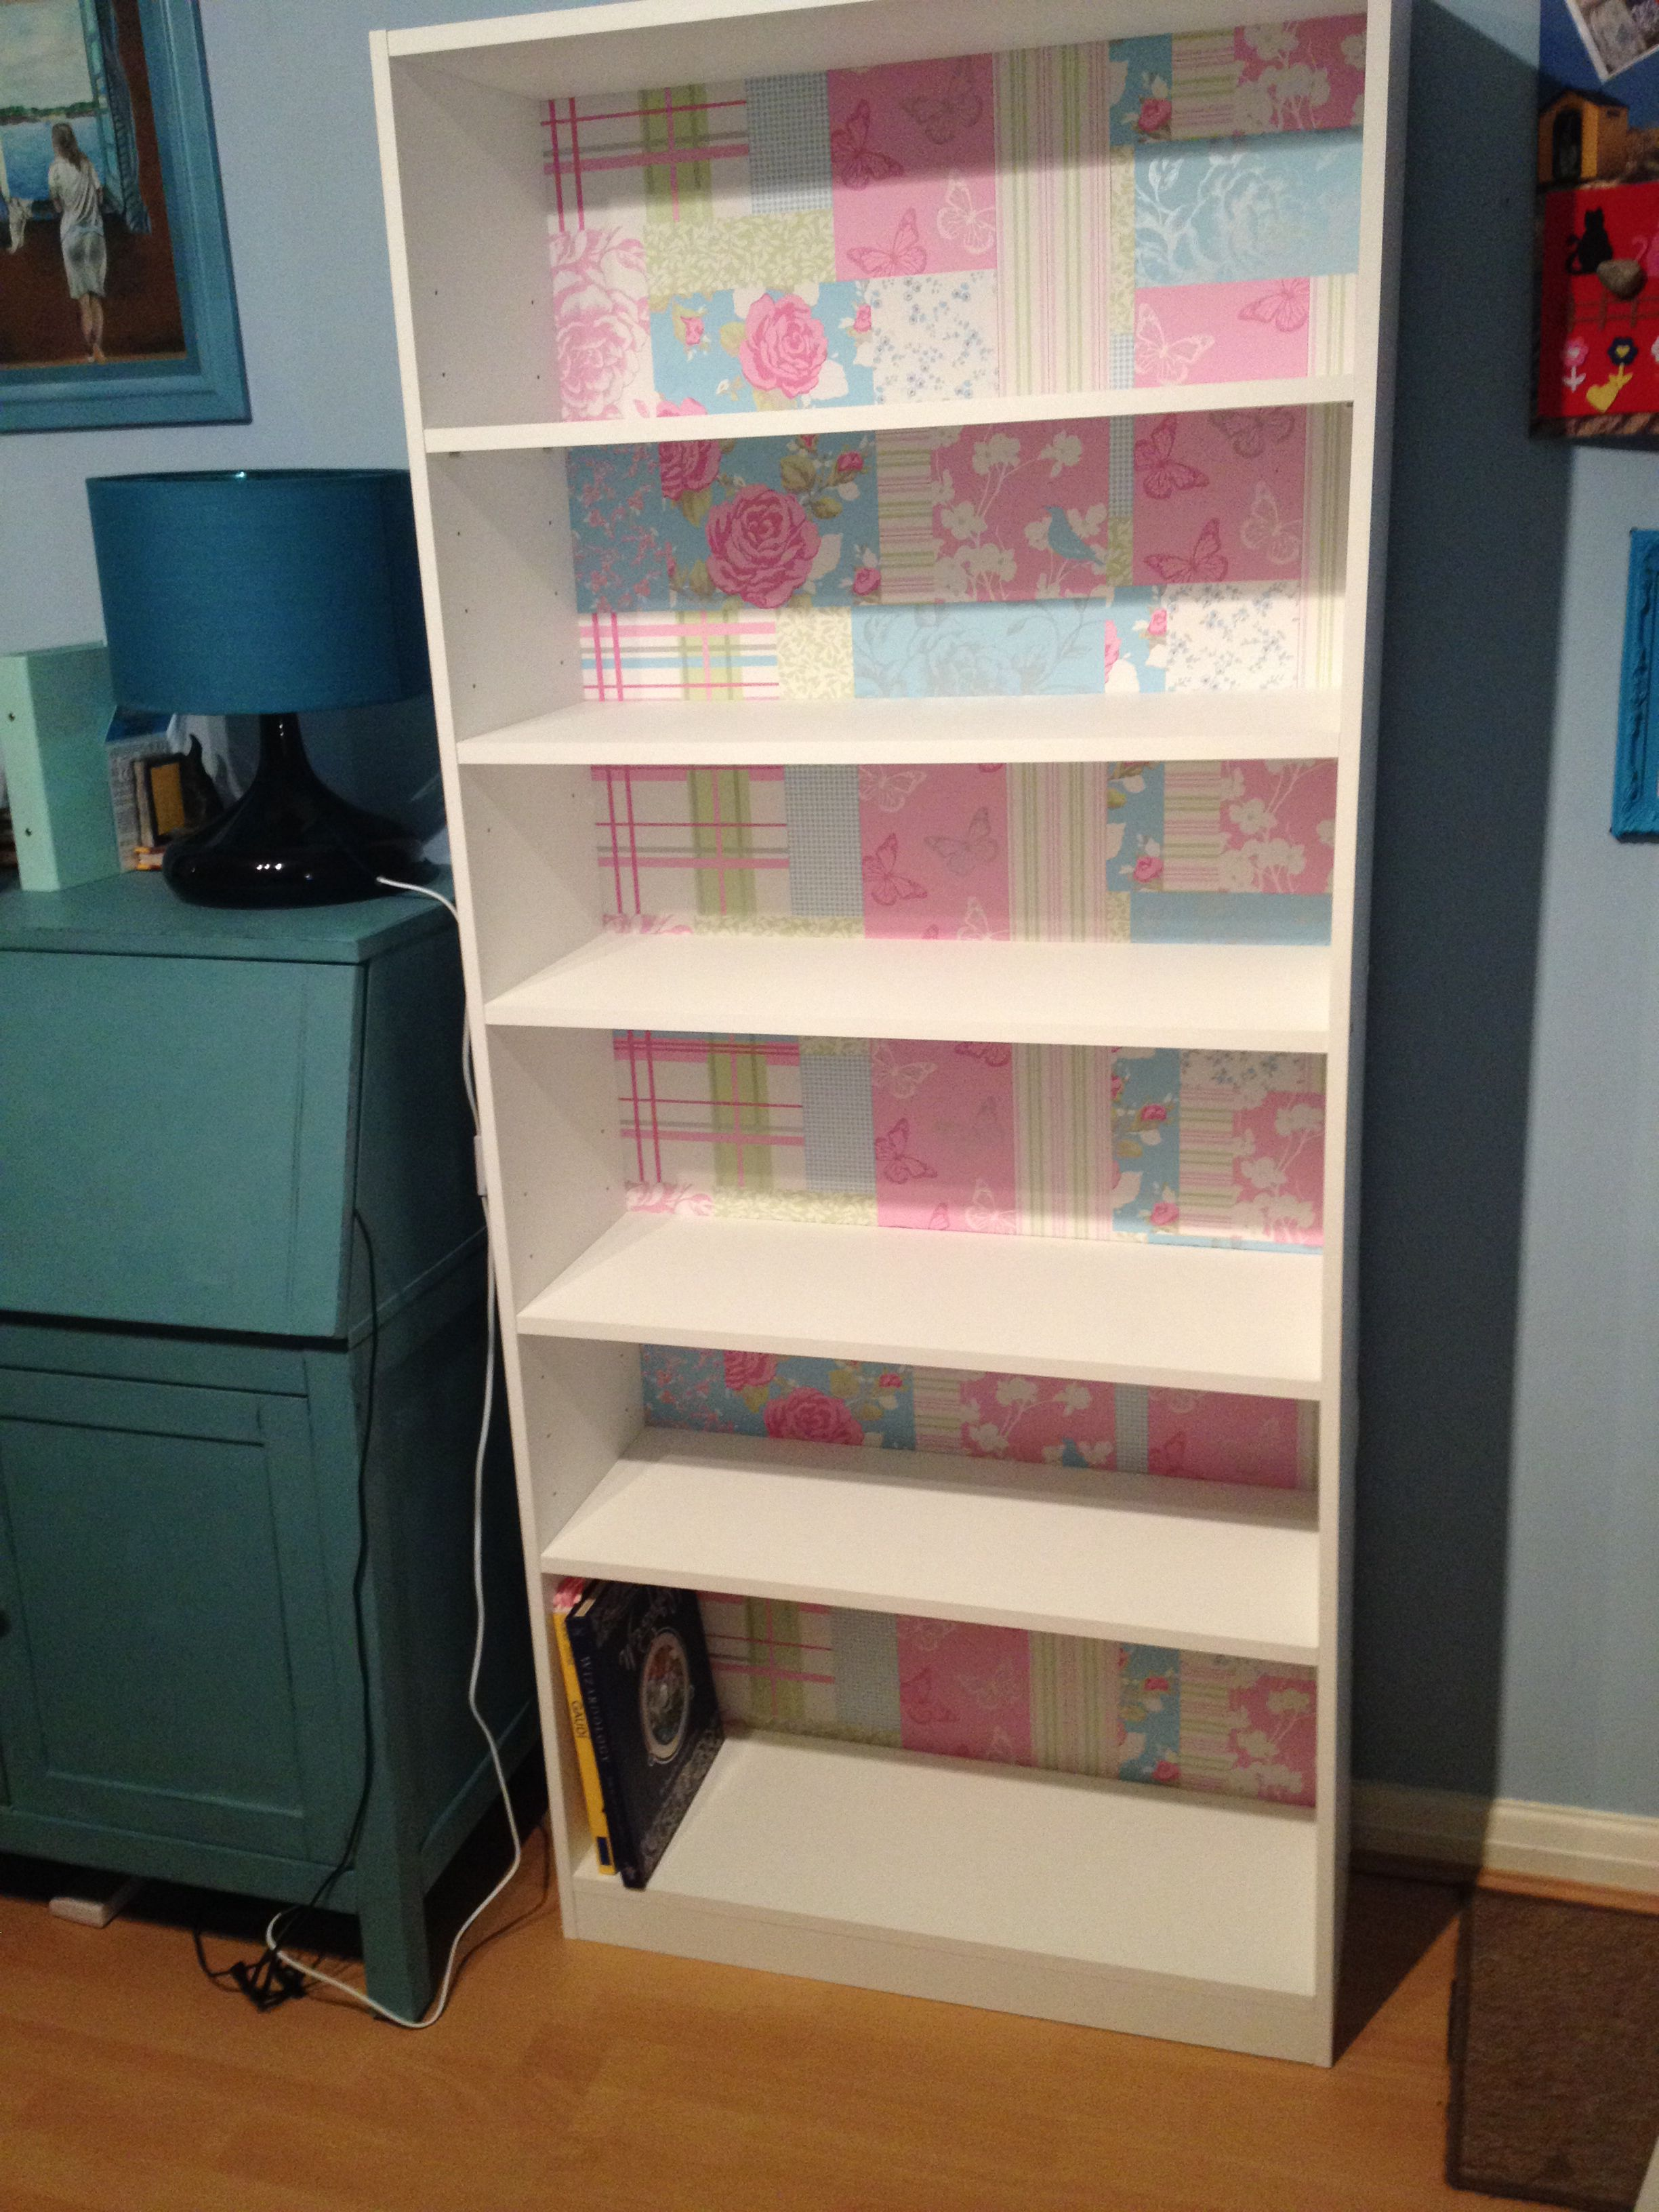 Argos Maine White Bookcase Make Over With Patchwork Wallpaper Lining